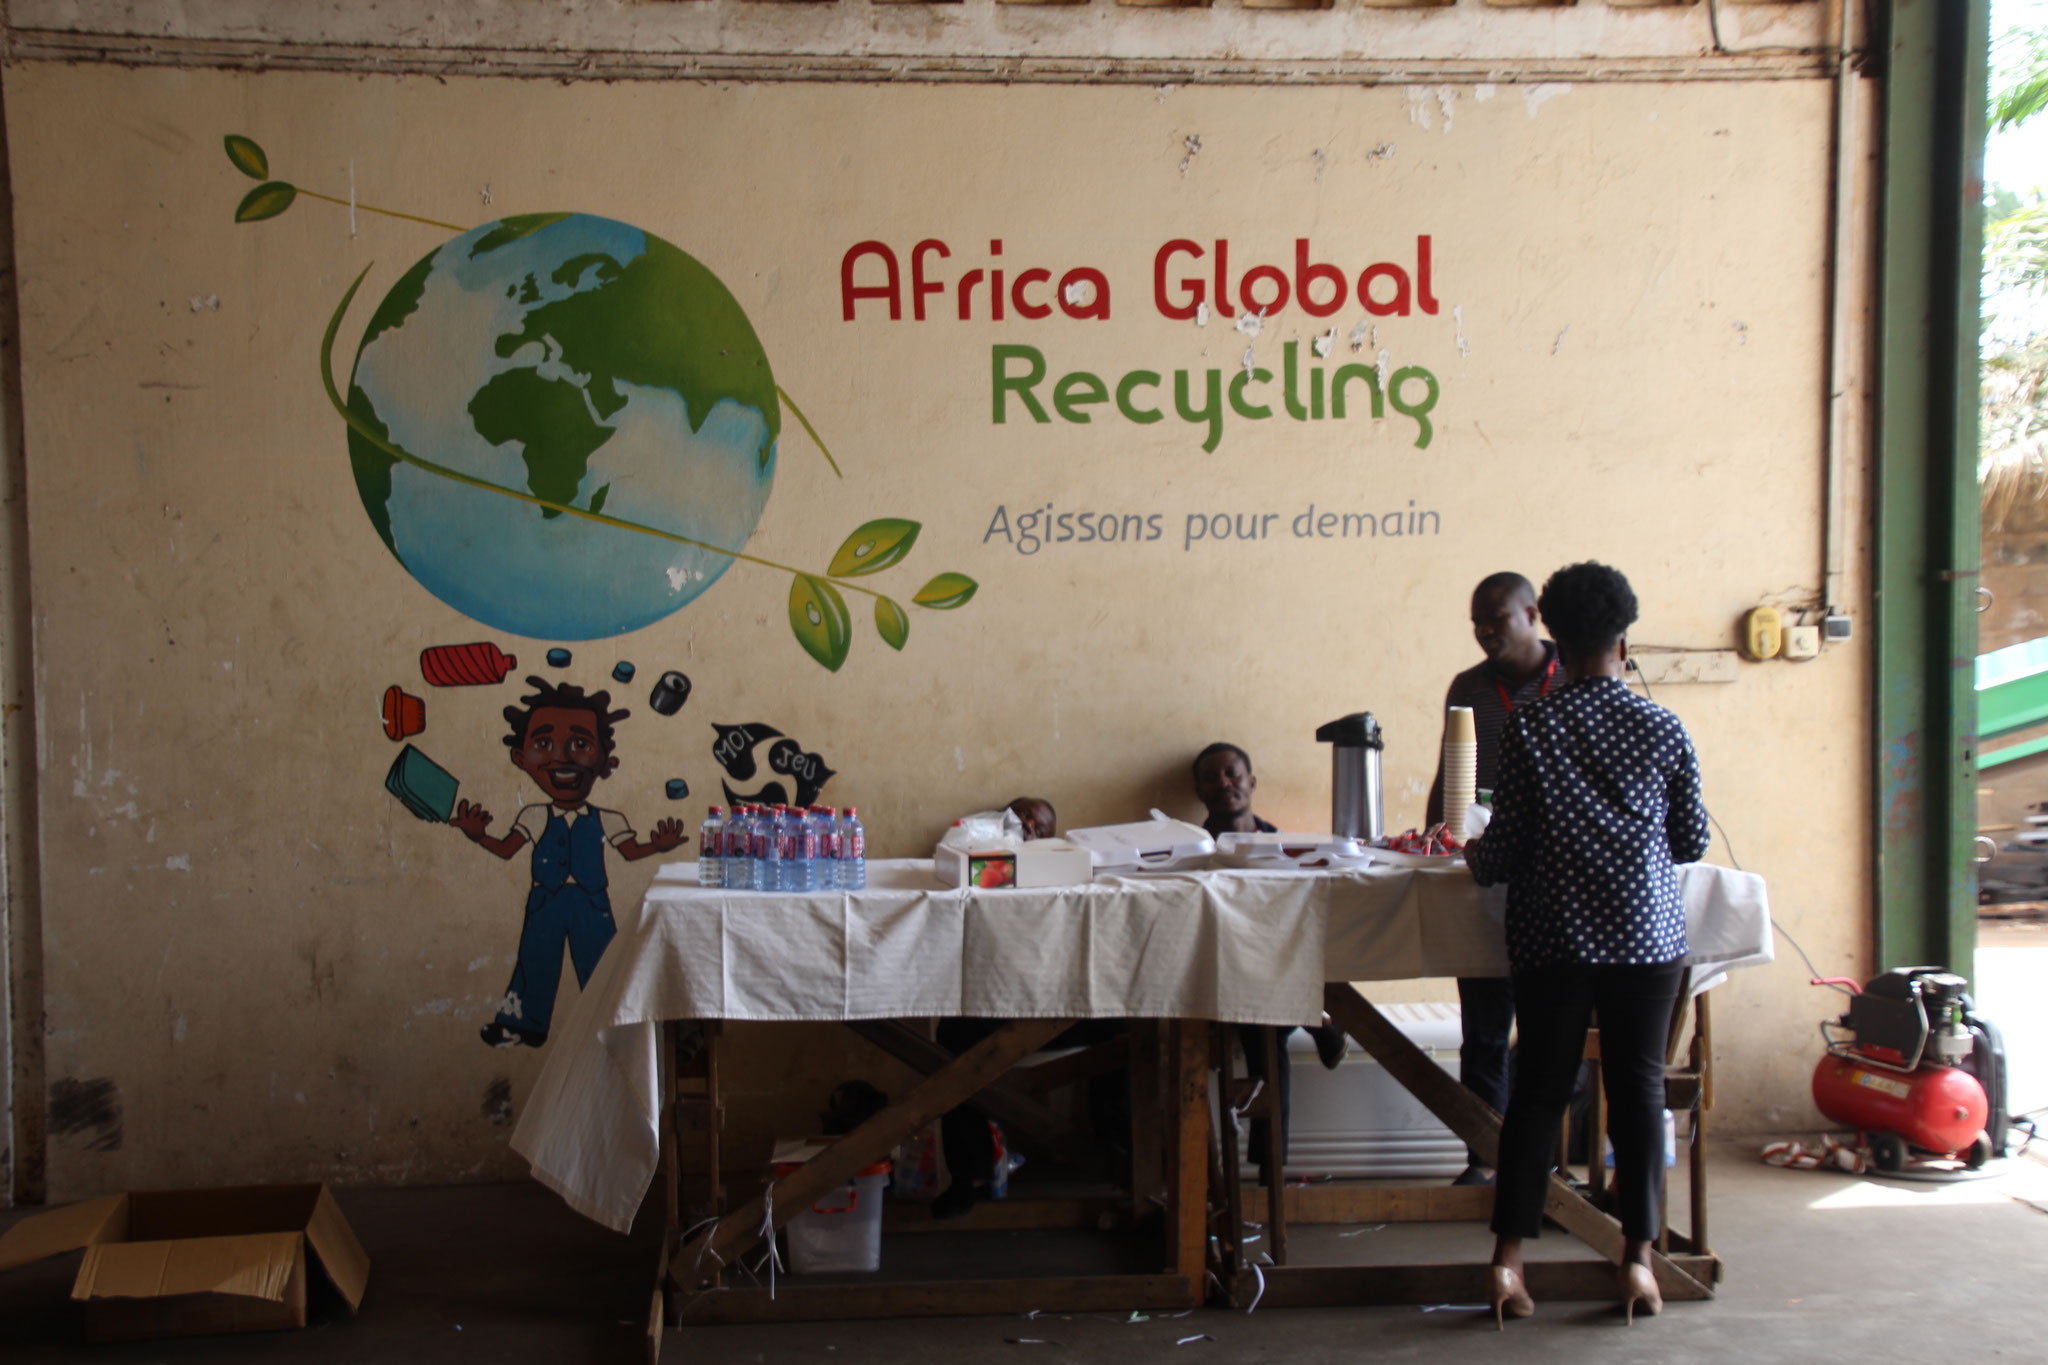 1. Africa Global Recycling.